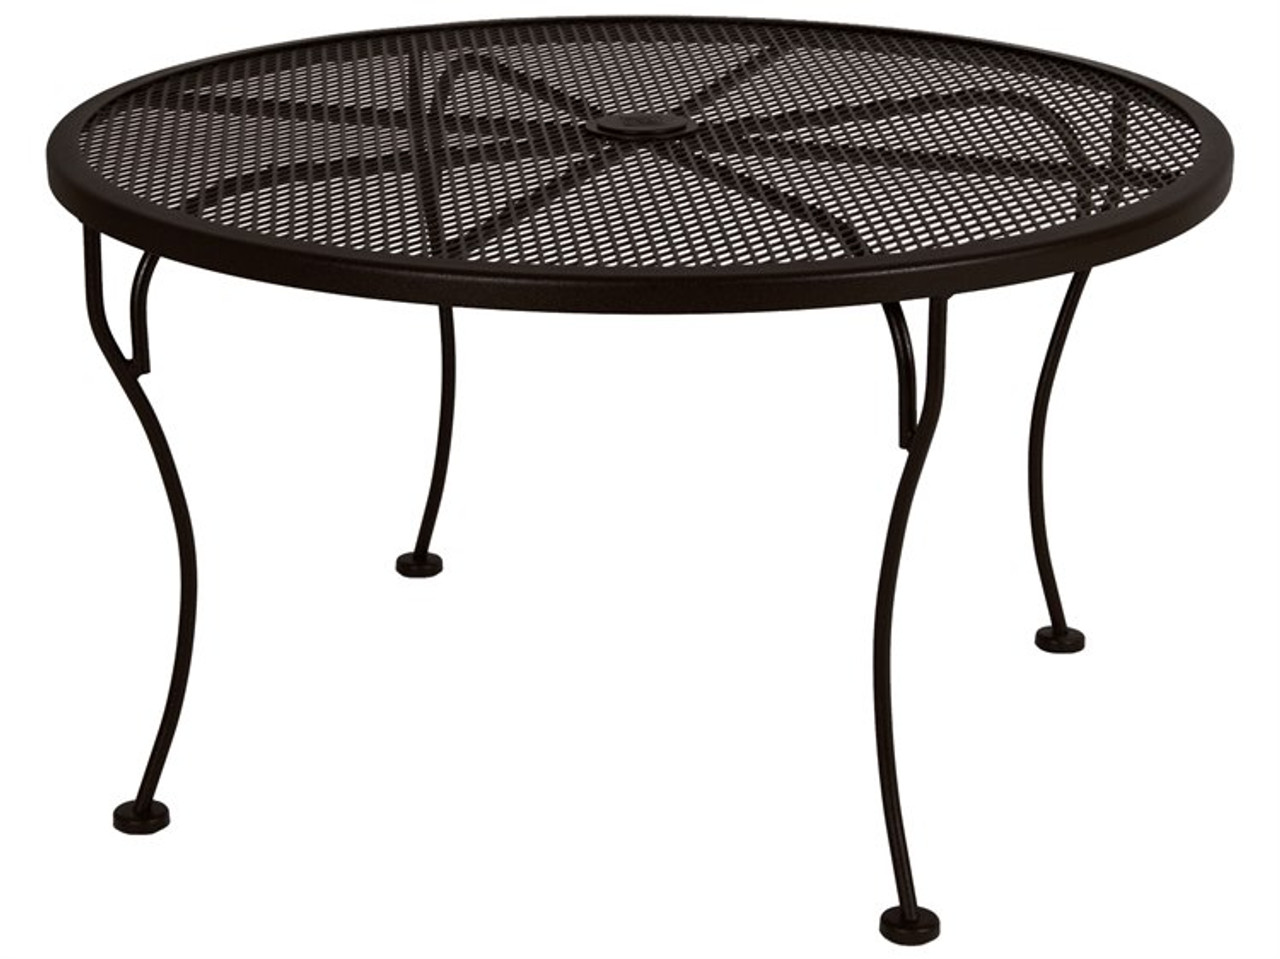 micro mesh round 36 coffee table with 1 625 umbrella hole by ow lee